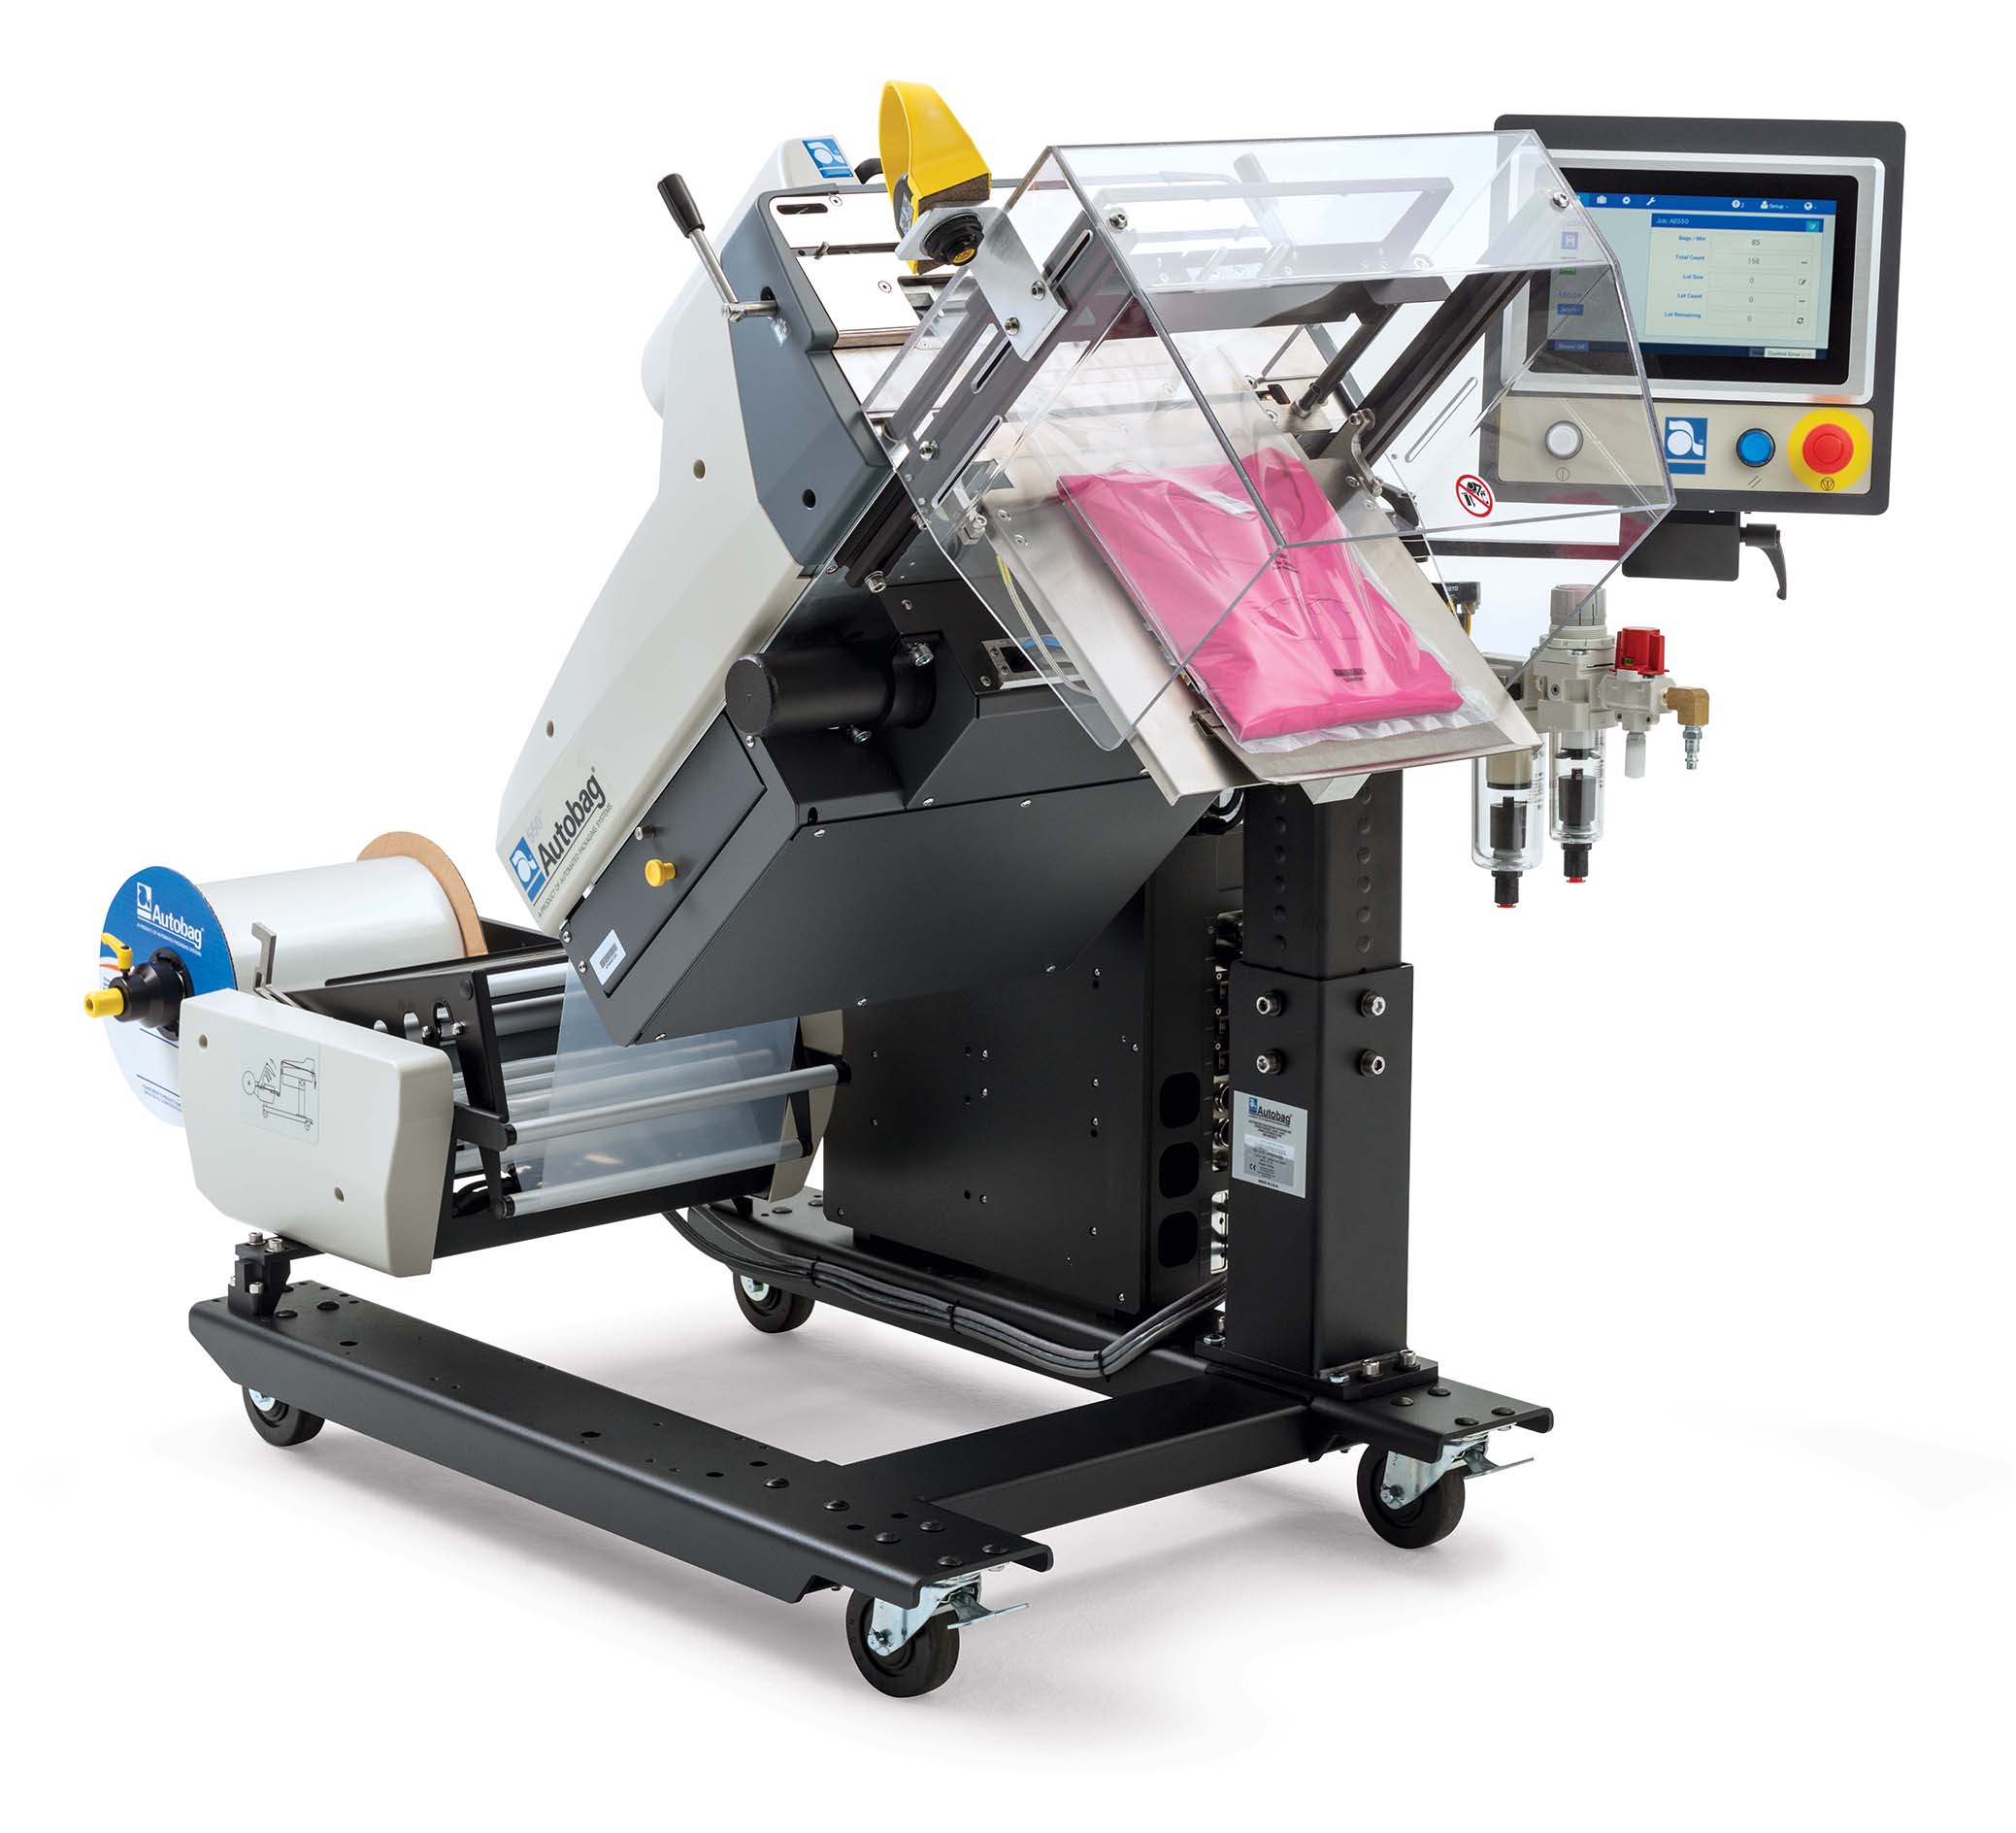 Autobag 550 Bagging system 45 degree tilt with t-shirt